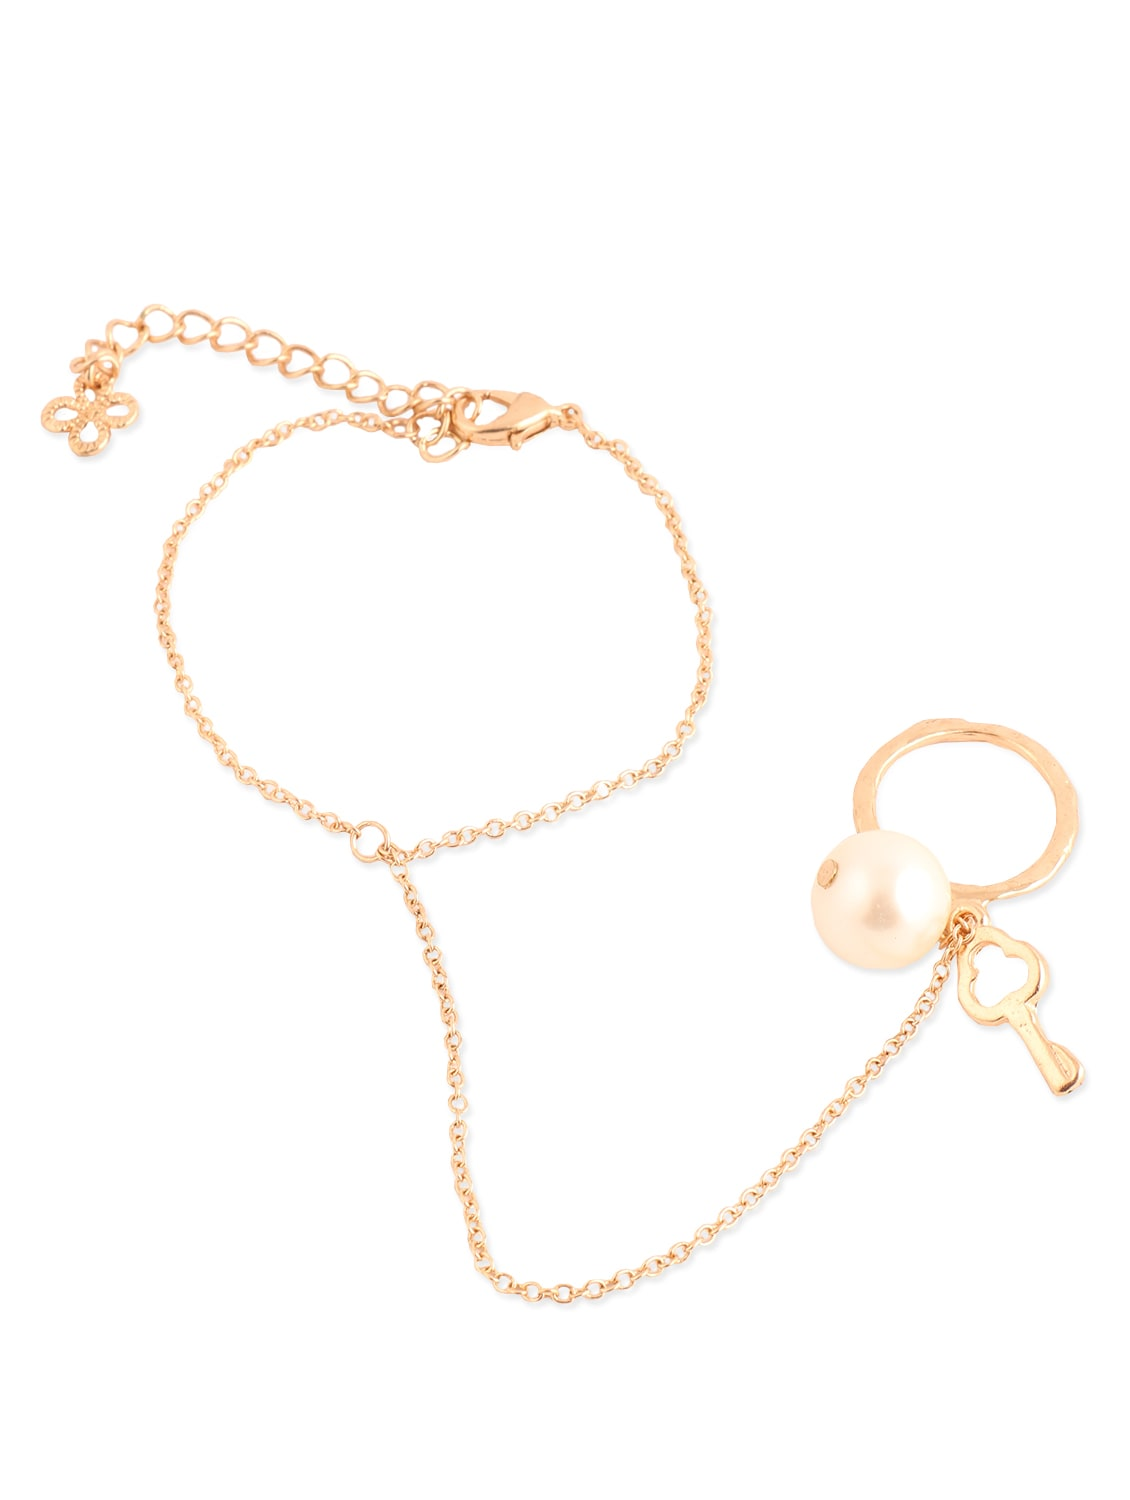 Amazing Gold Bracelet With Gorgeous Pearl Ring With Key - Addons